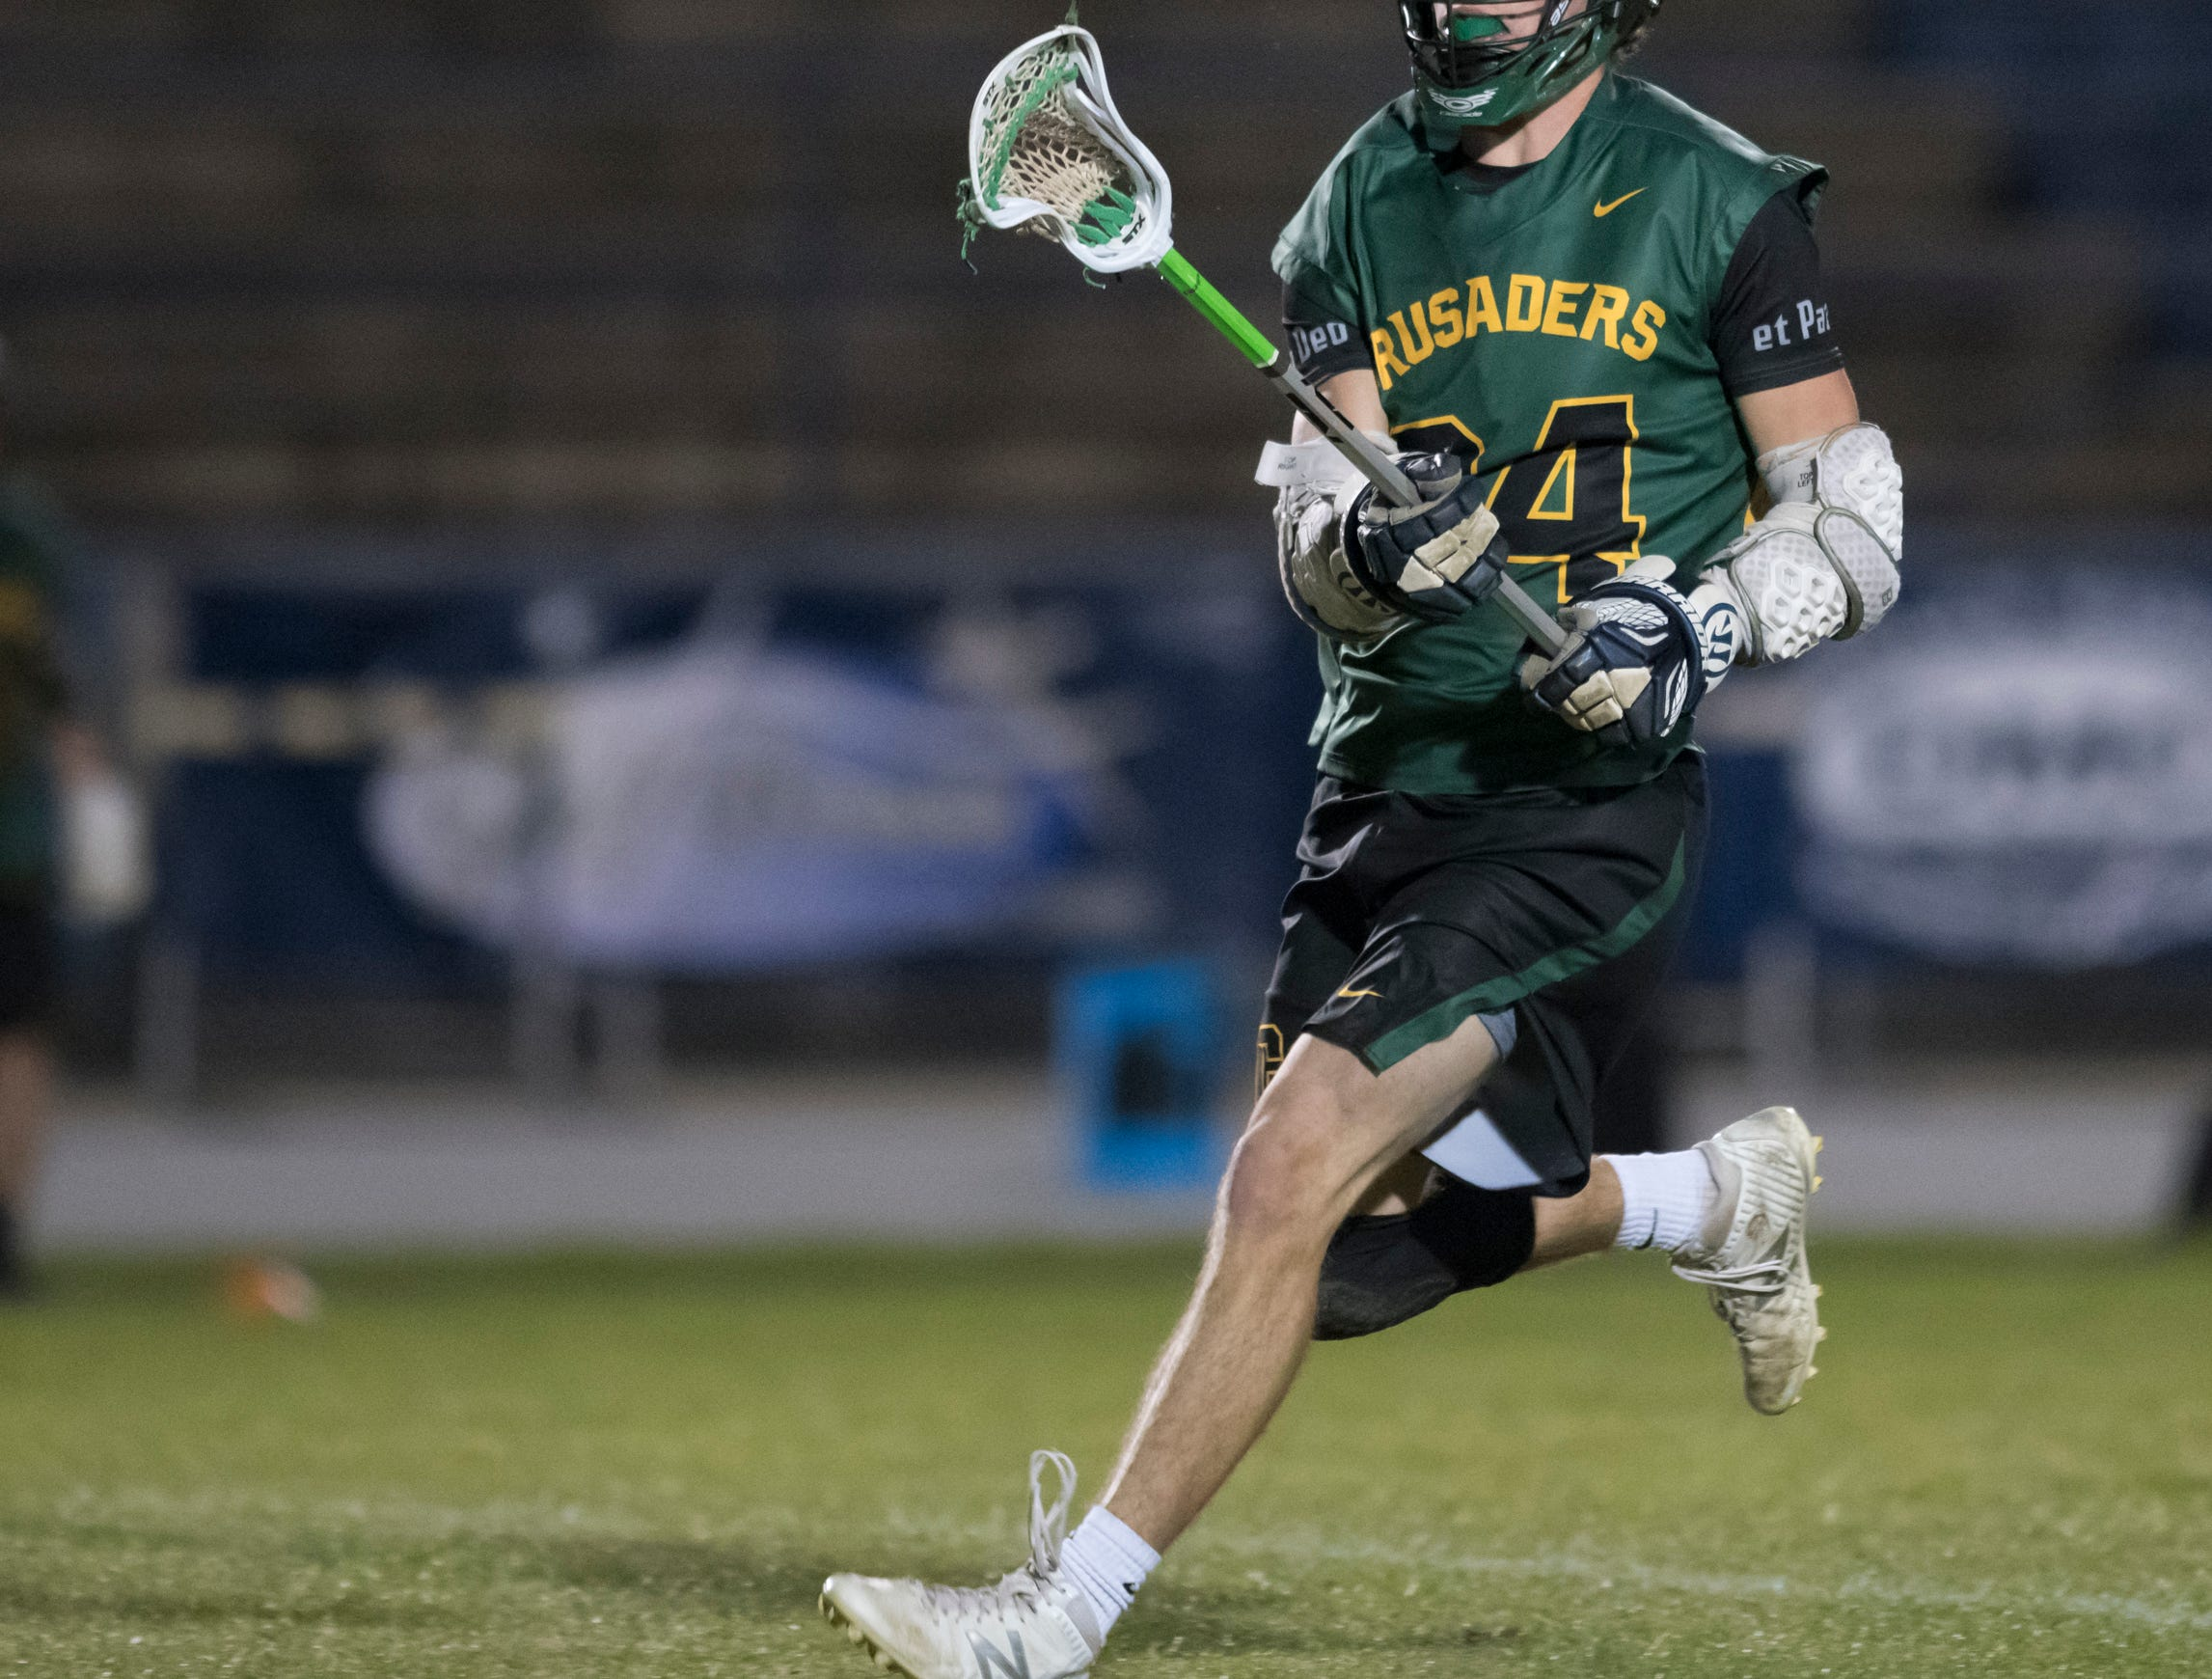 William Butler (24) passes the ball during the Catholic vs. Gulf Breeze boys lacrosse game at Gulf Breeze High School on Wednesday, March 6, 2019.